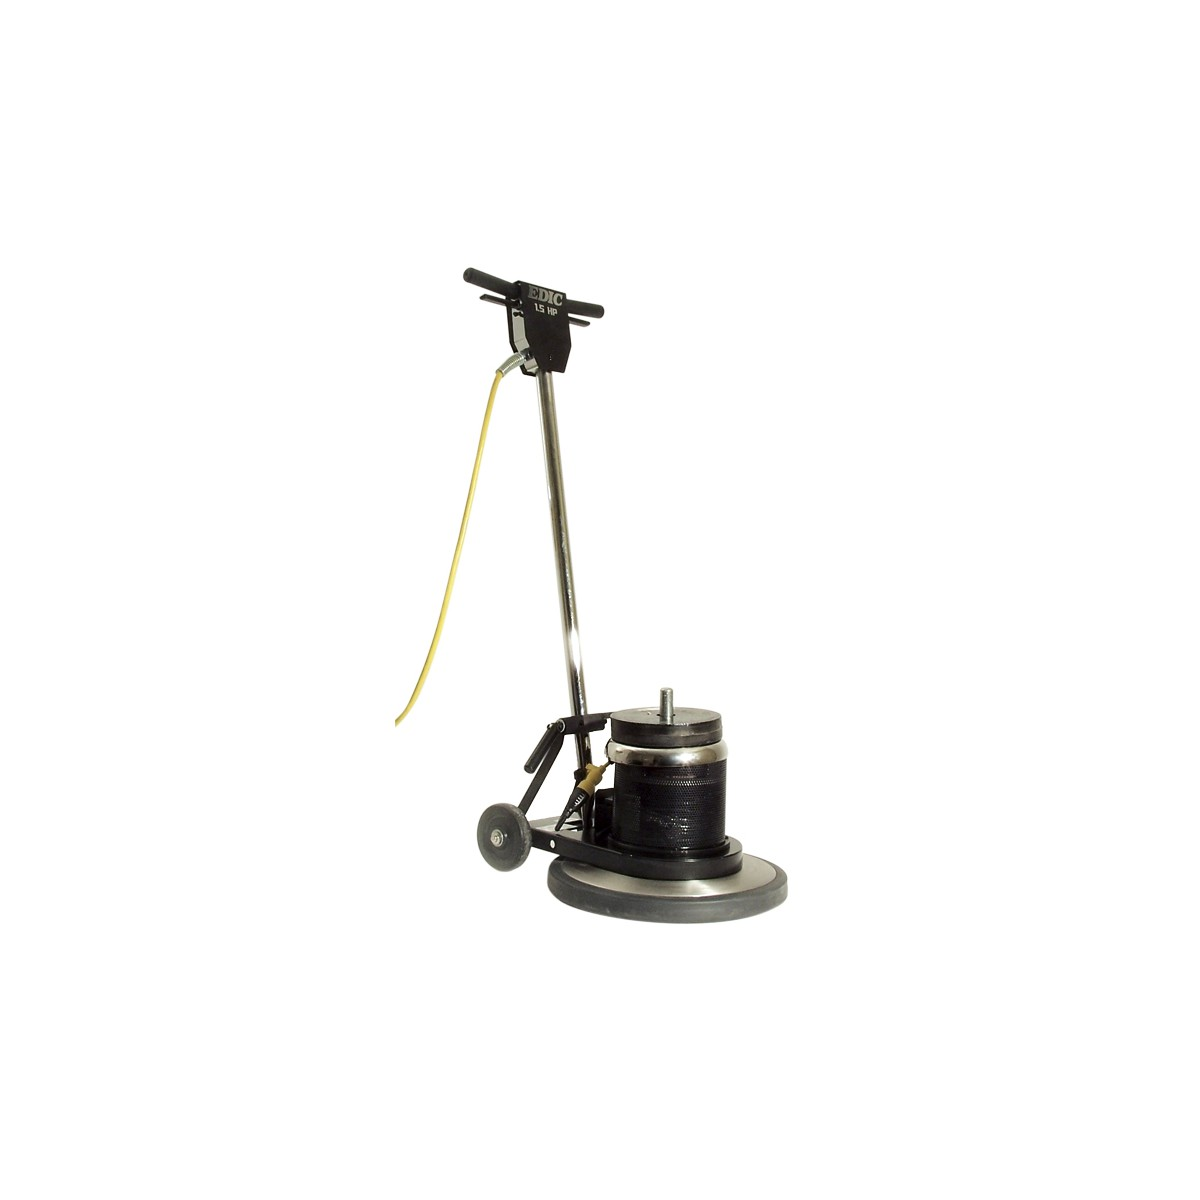 Jv17ap 17 floor polisher 1 speed with weight edic for 17 floor